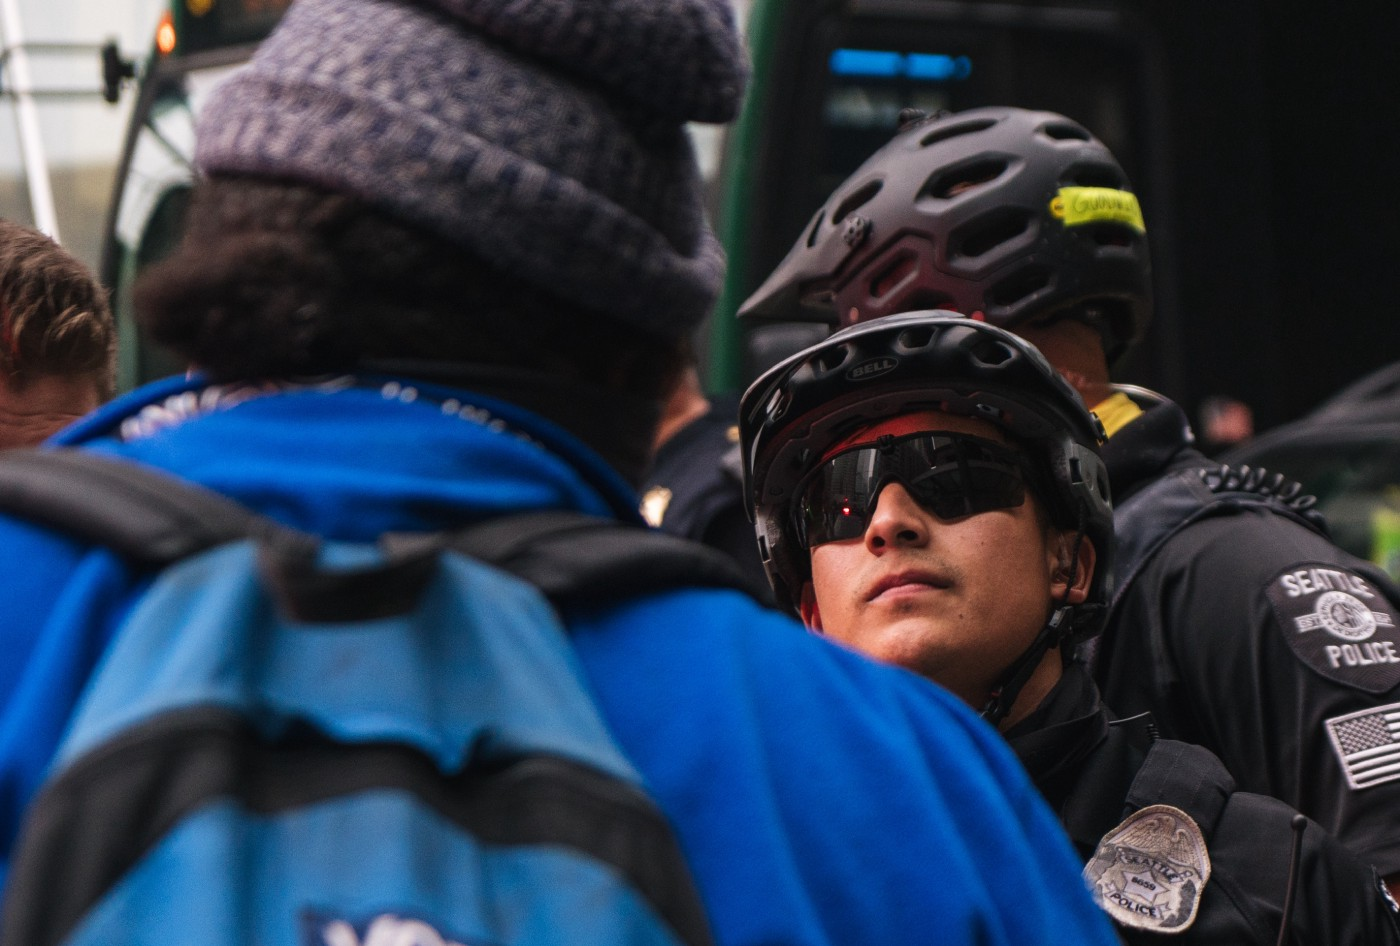 One maskless Seattle police officer wearing sunglasses and a bike helmet attempts to stare down a protester.